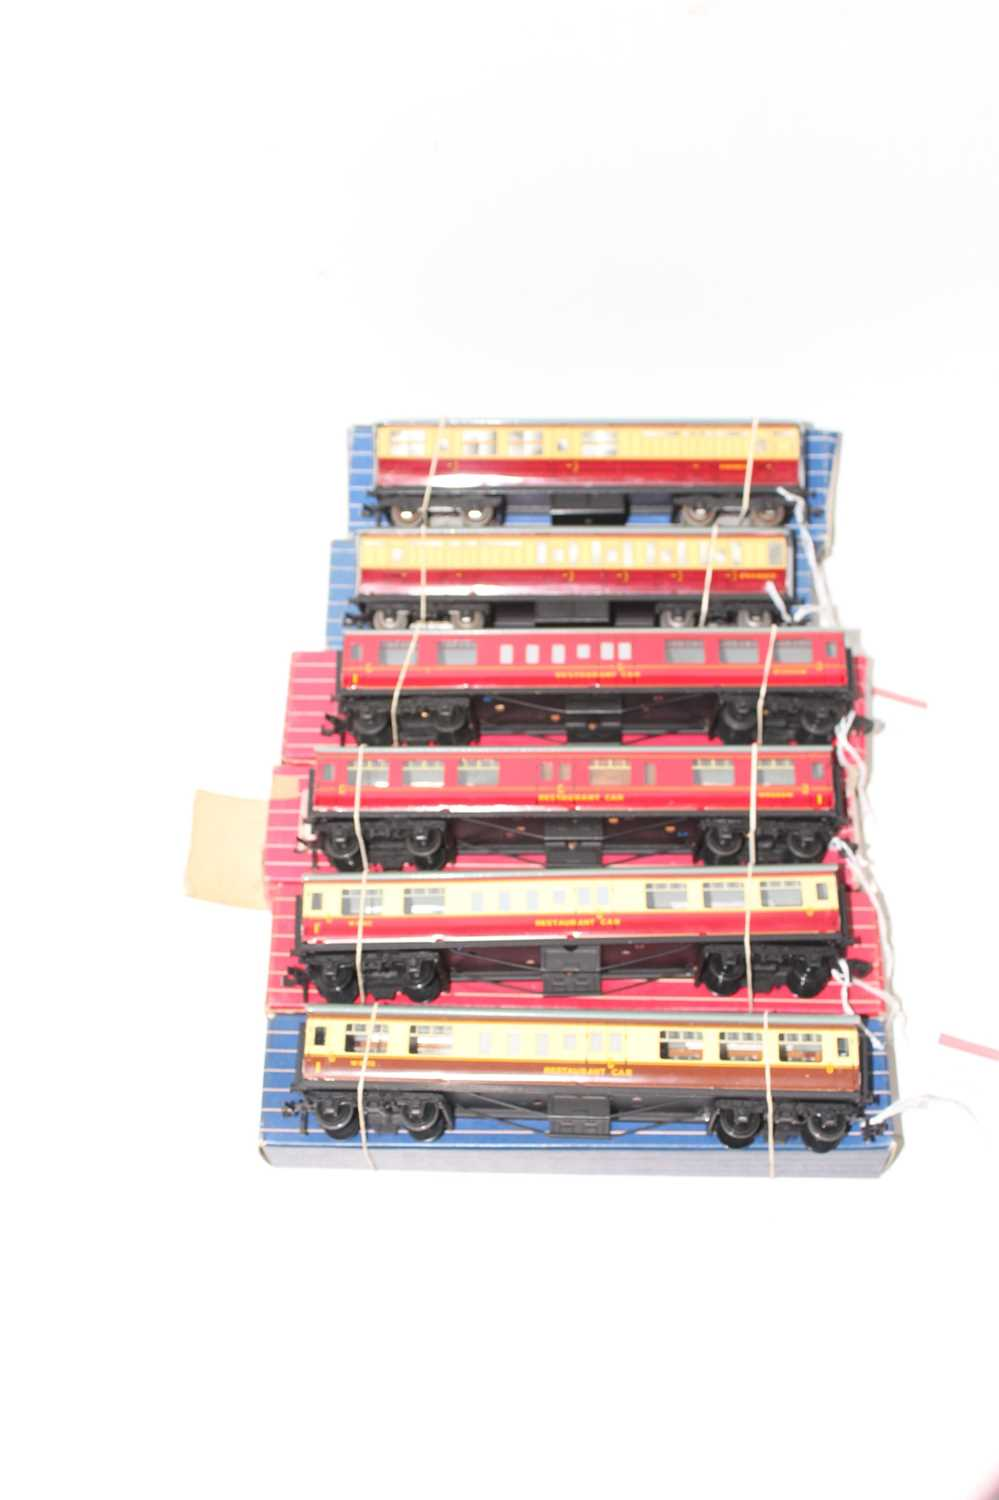 Six Hornby-Dublo coaches all (NM-BE) two D11 maroon & cream Br/3rd; four tinplate restaurant